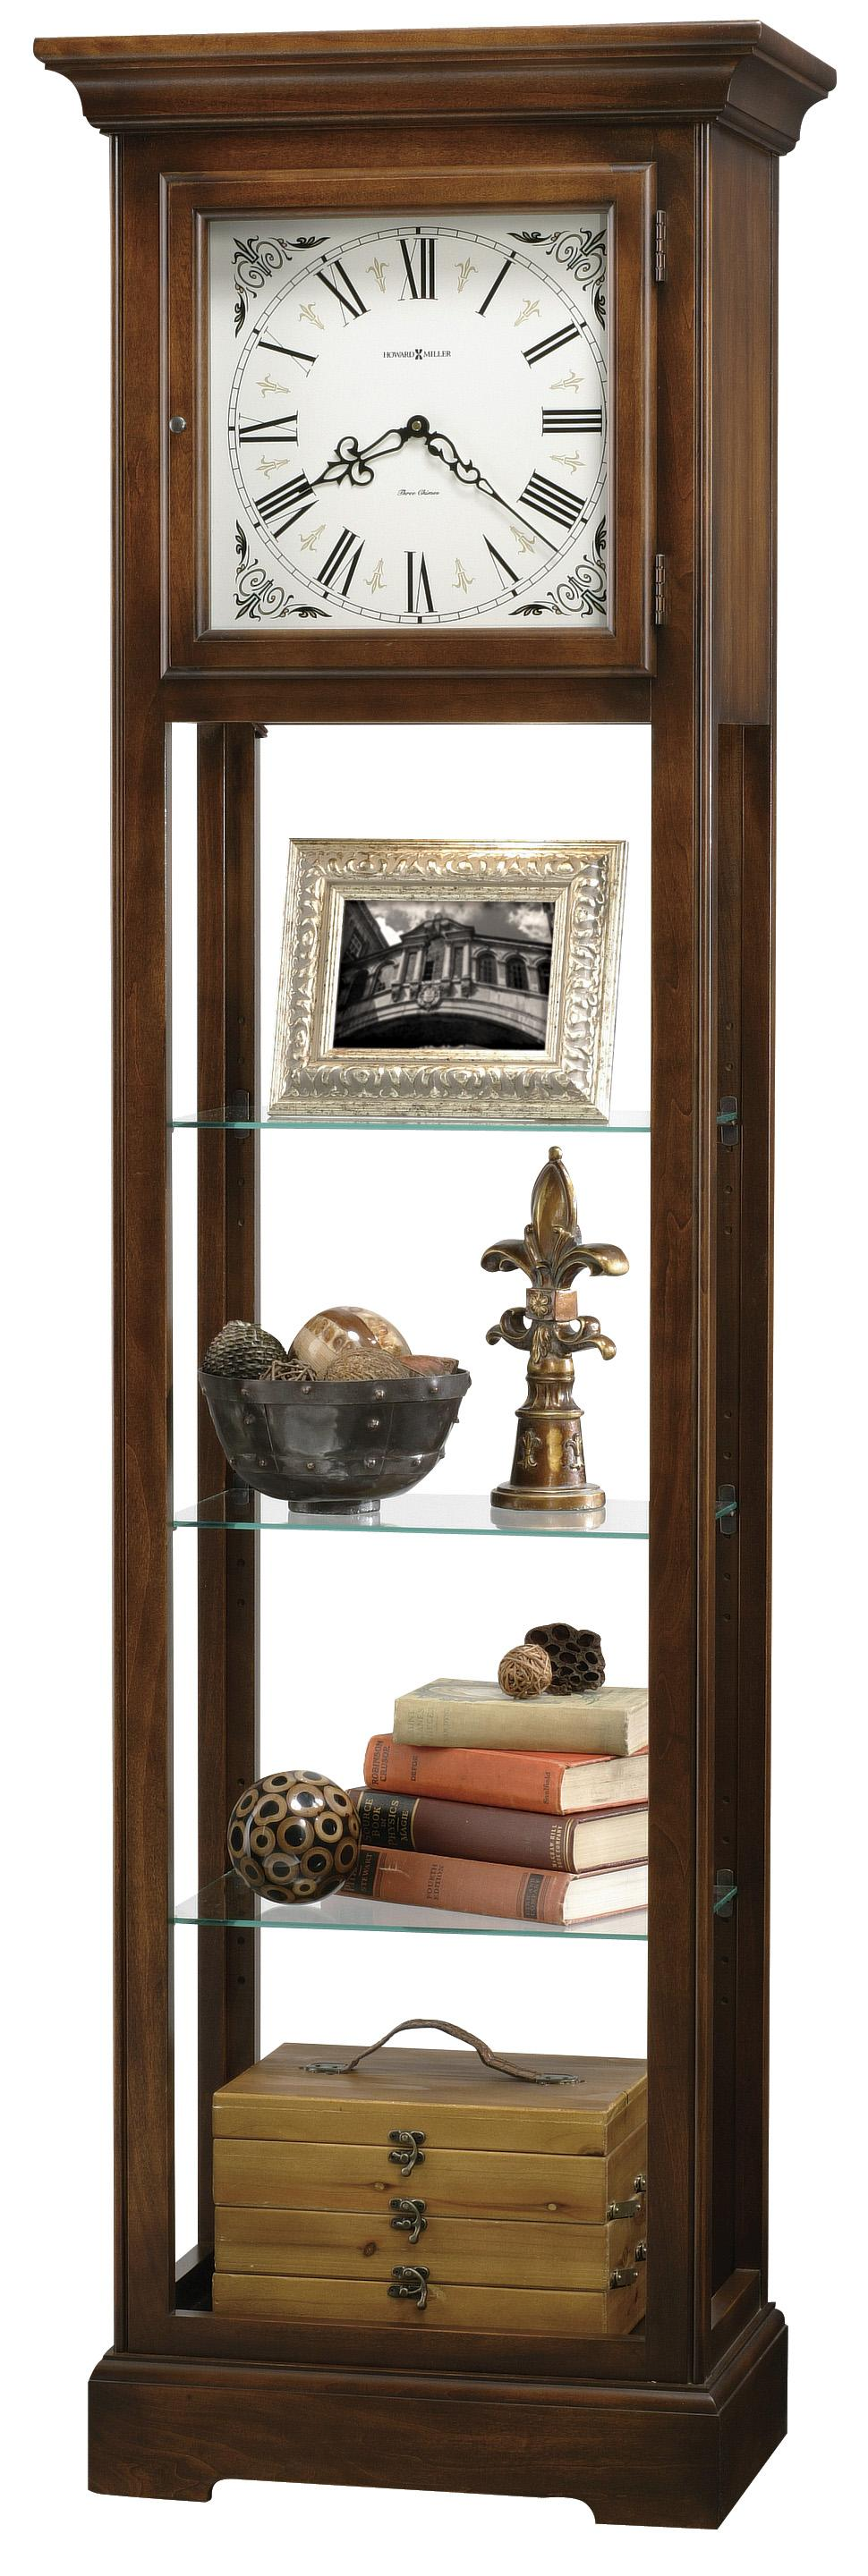 Clocks Le Rose Grandfather Clock by Howard Miller at Alison Craig Home Furnishings